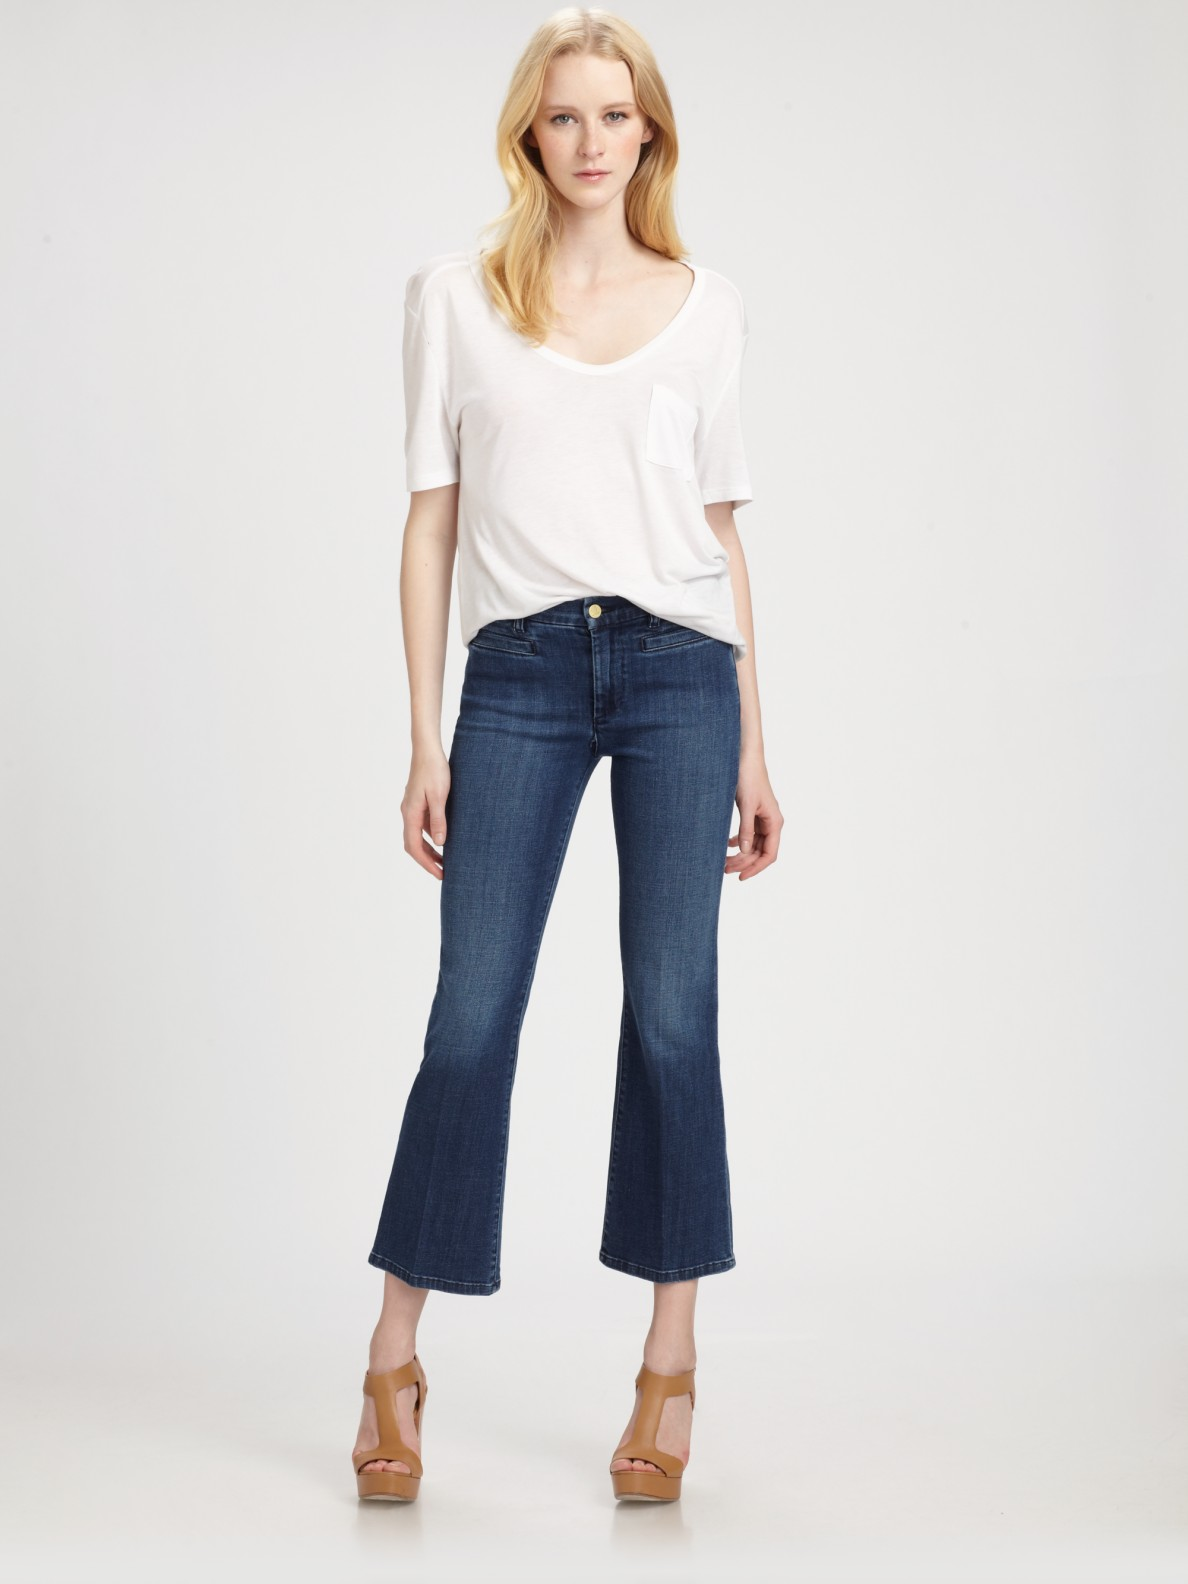 M.i.h jeans Monaco Cropped Kick Flare Jeans in Blue | Lyst